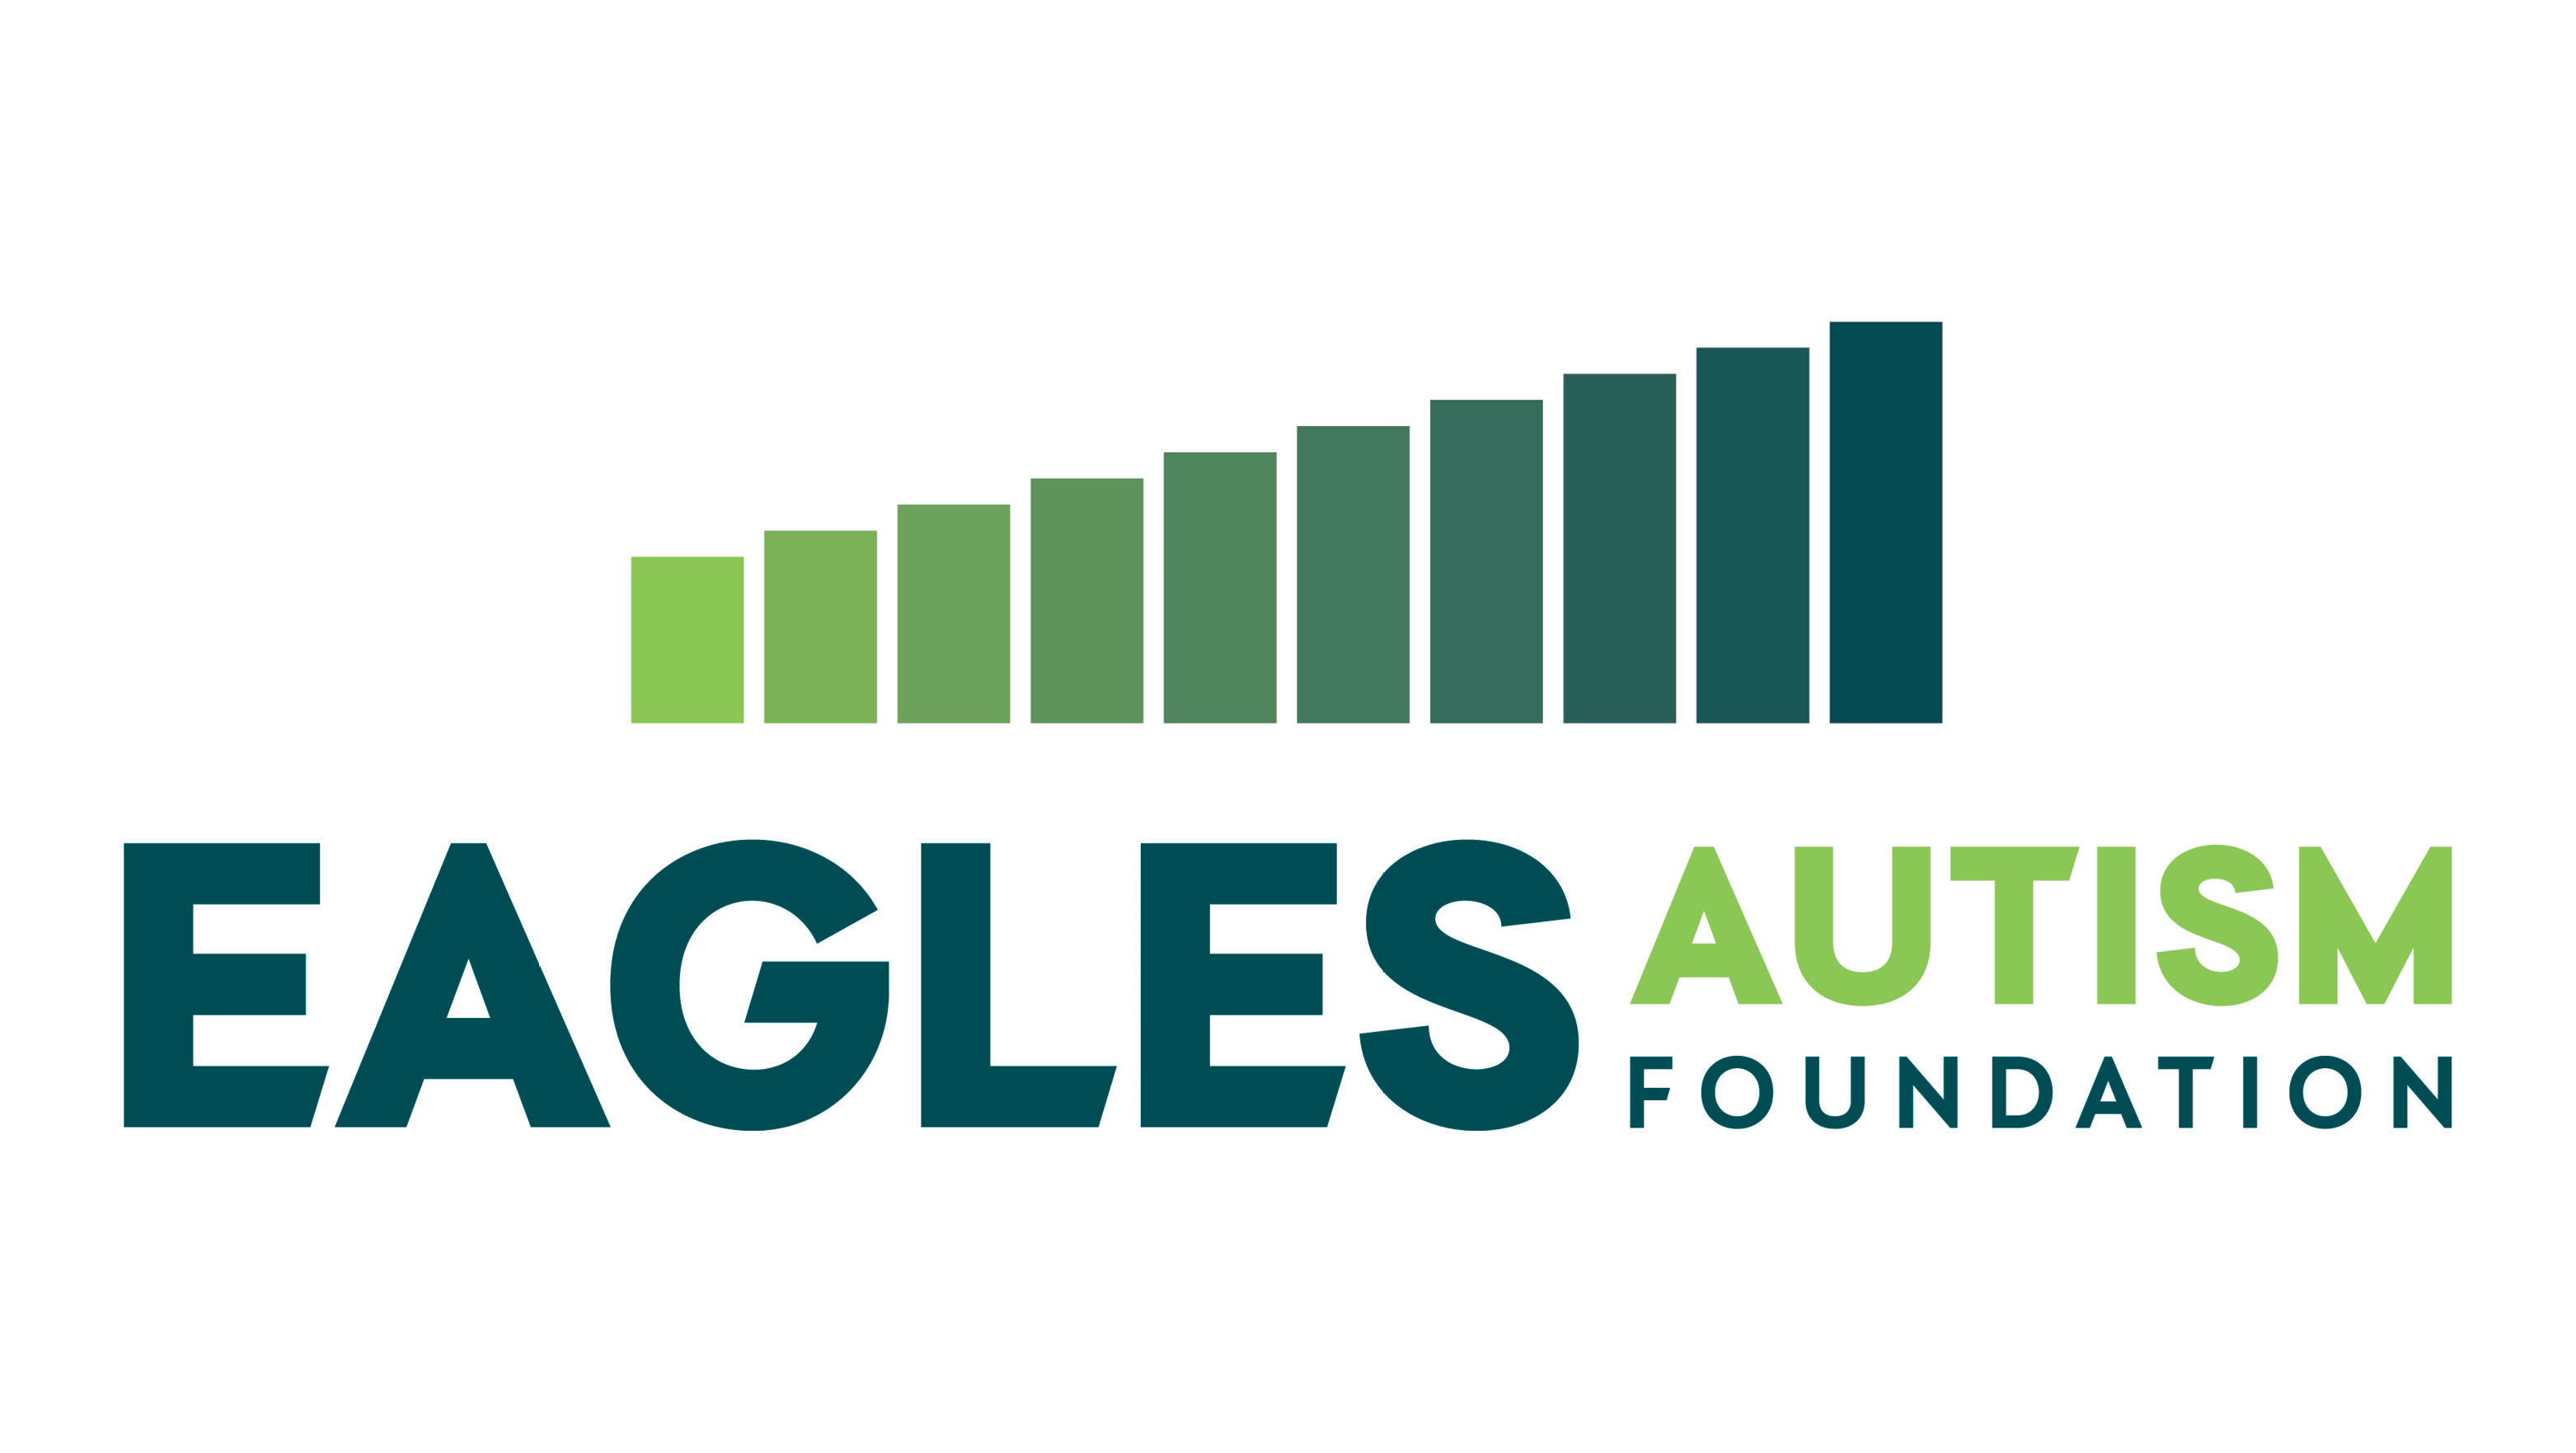 The Eagles Autism Foundation is a Lecture and Event sponsor of Neuroscience 2021.